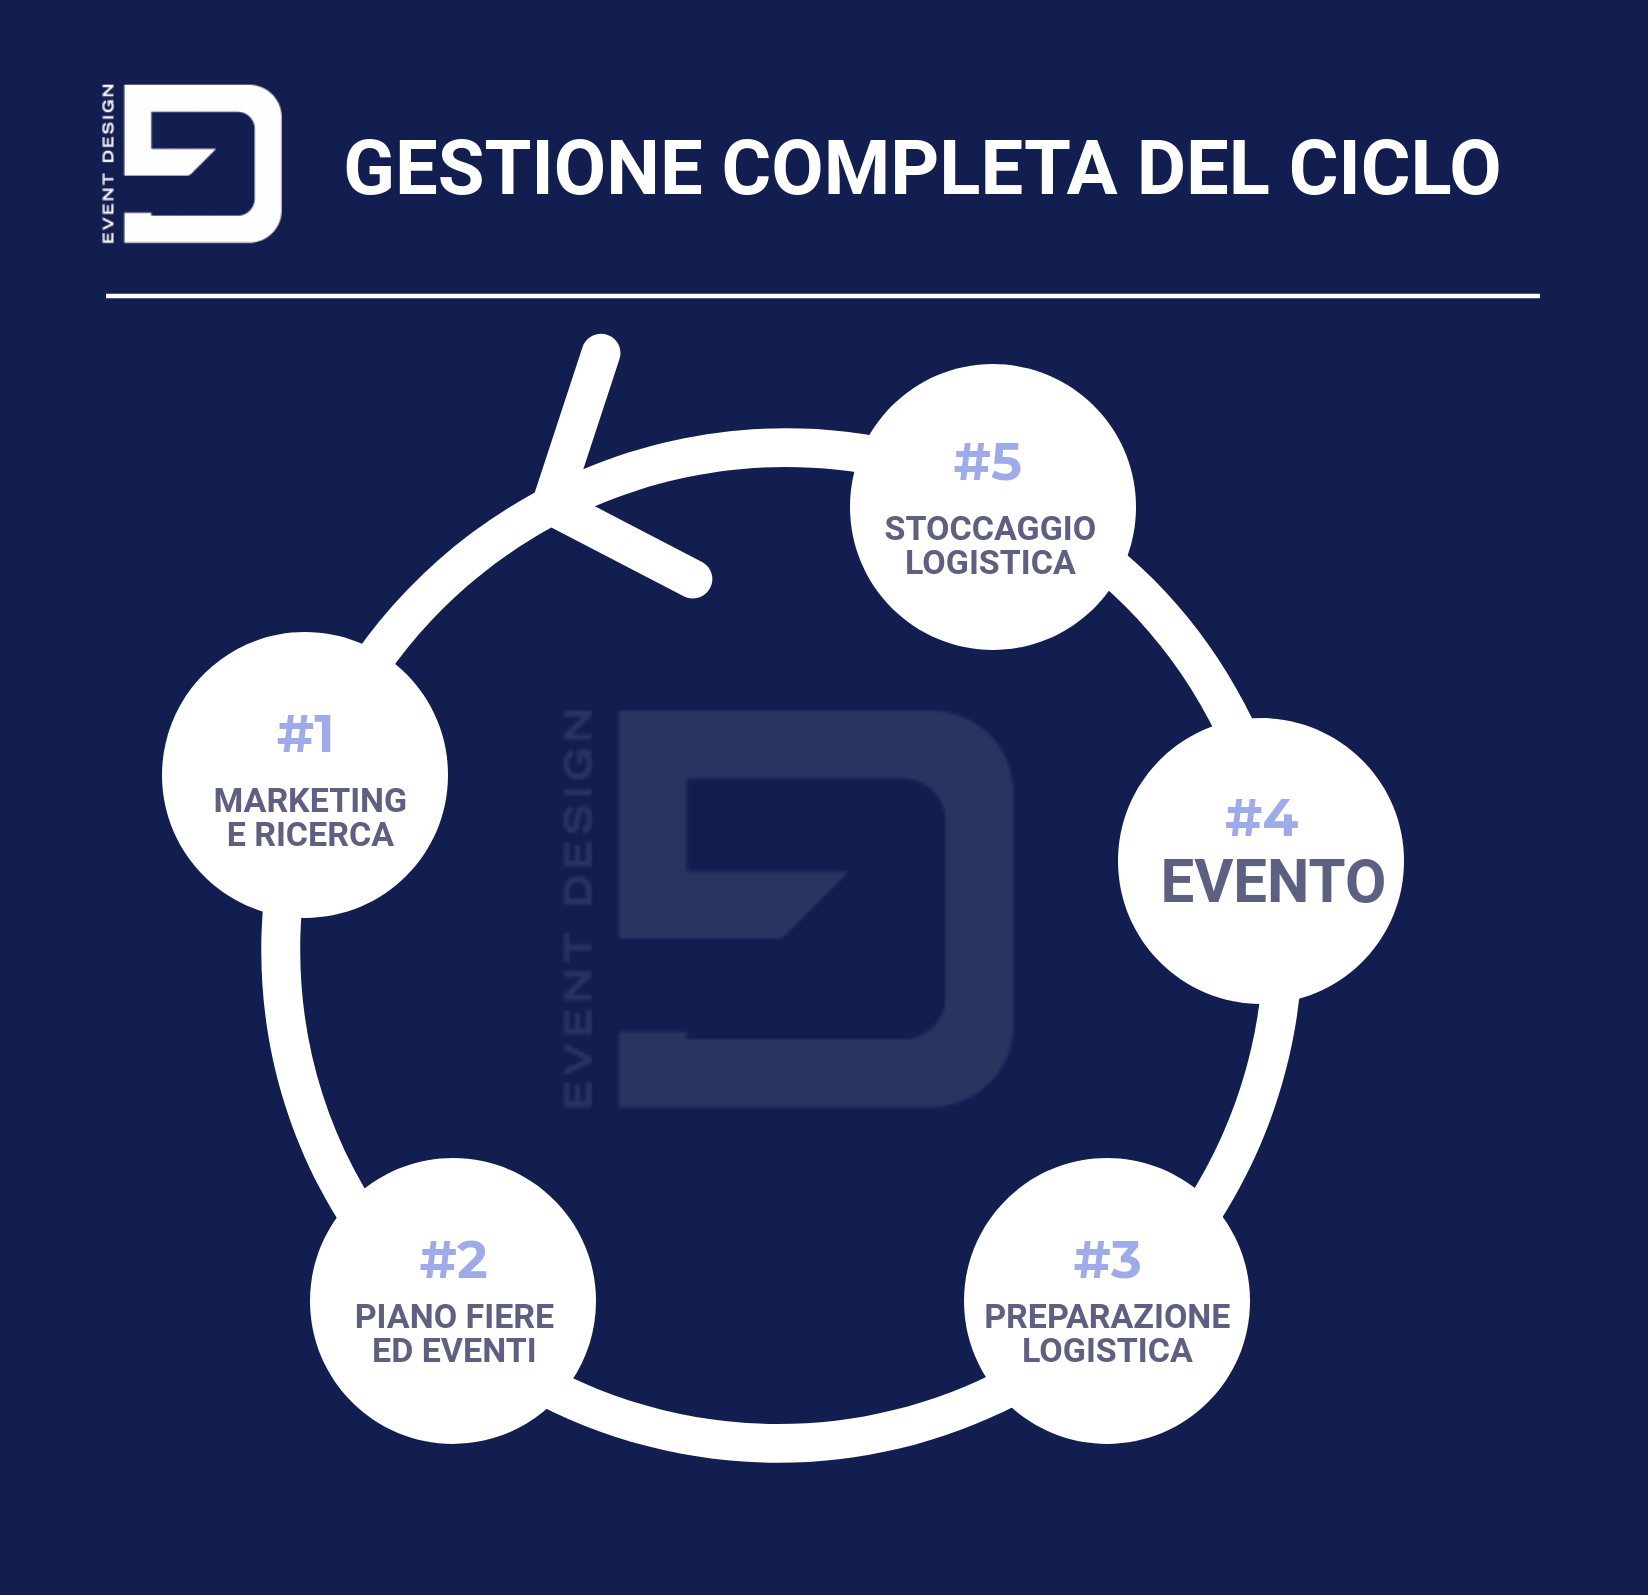 gestione del ciclo event design group